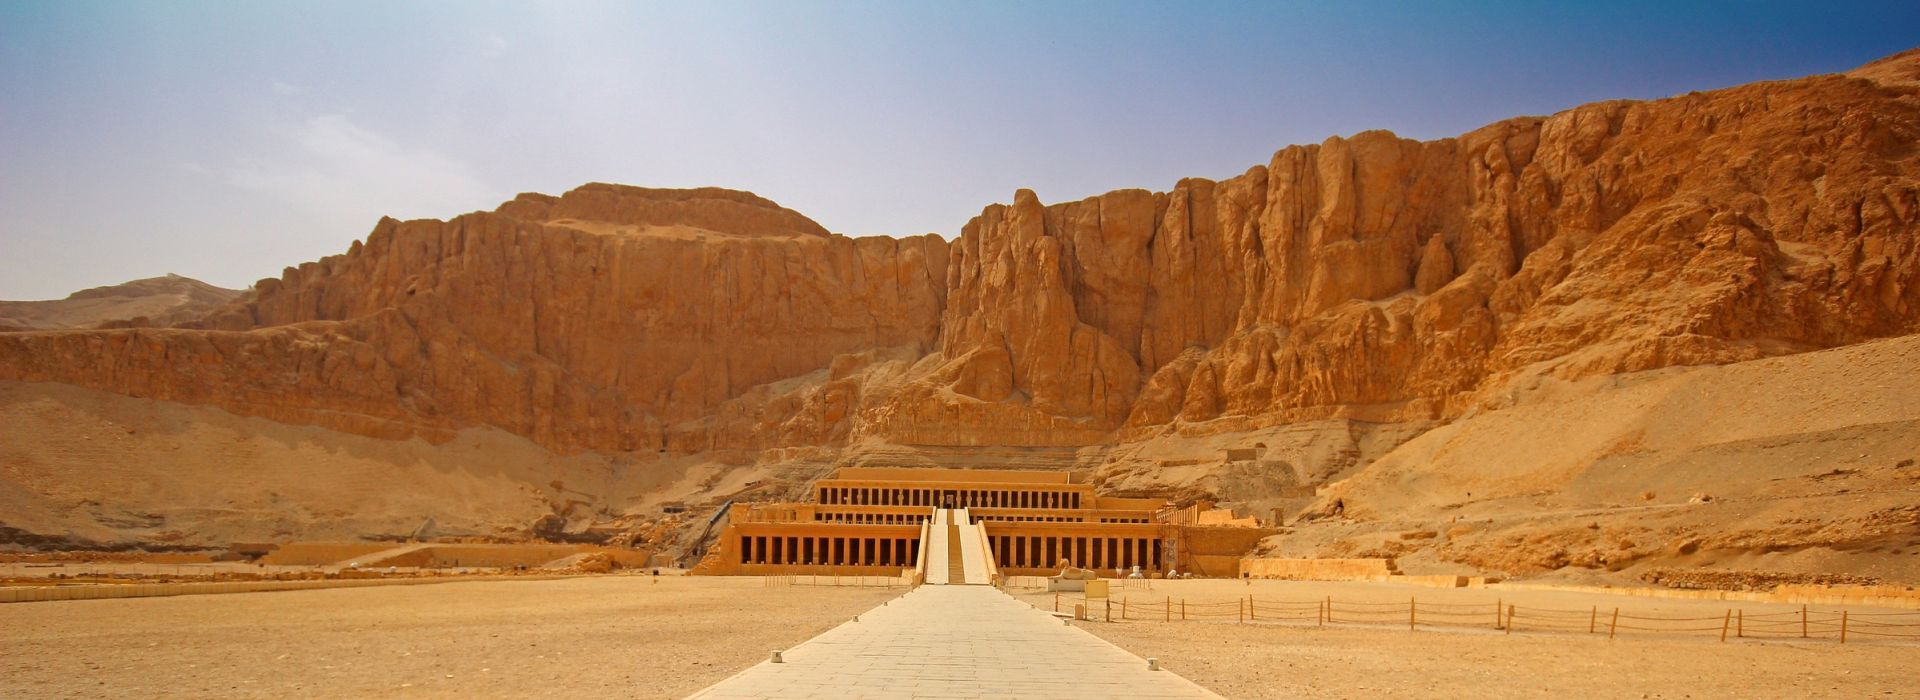 Sightseeing, attractions, culture and history Tours in Egypt